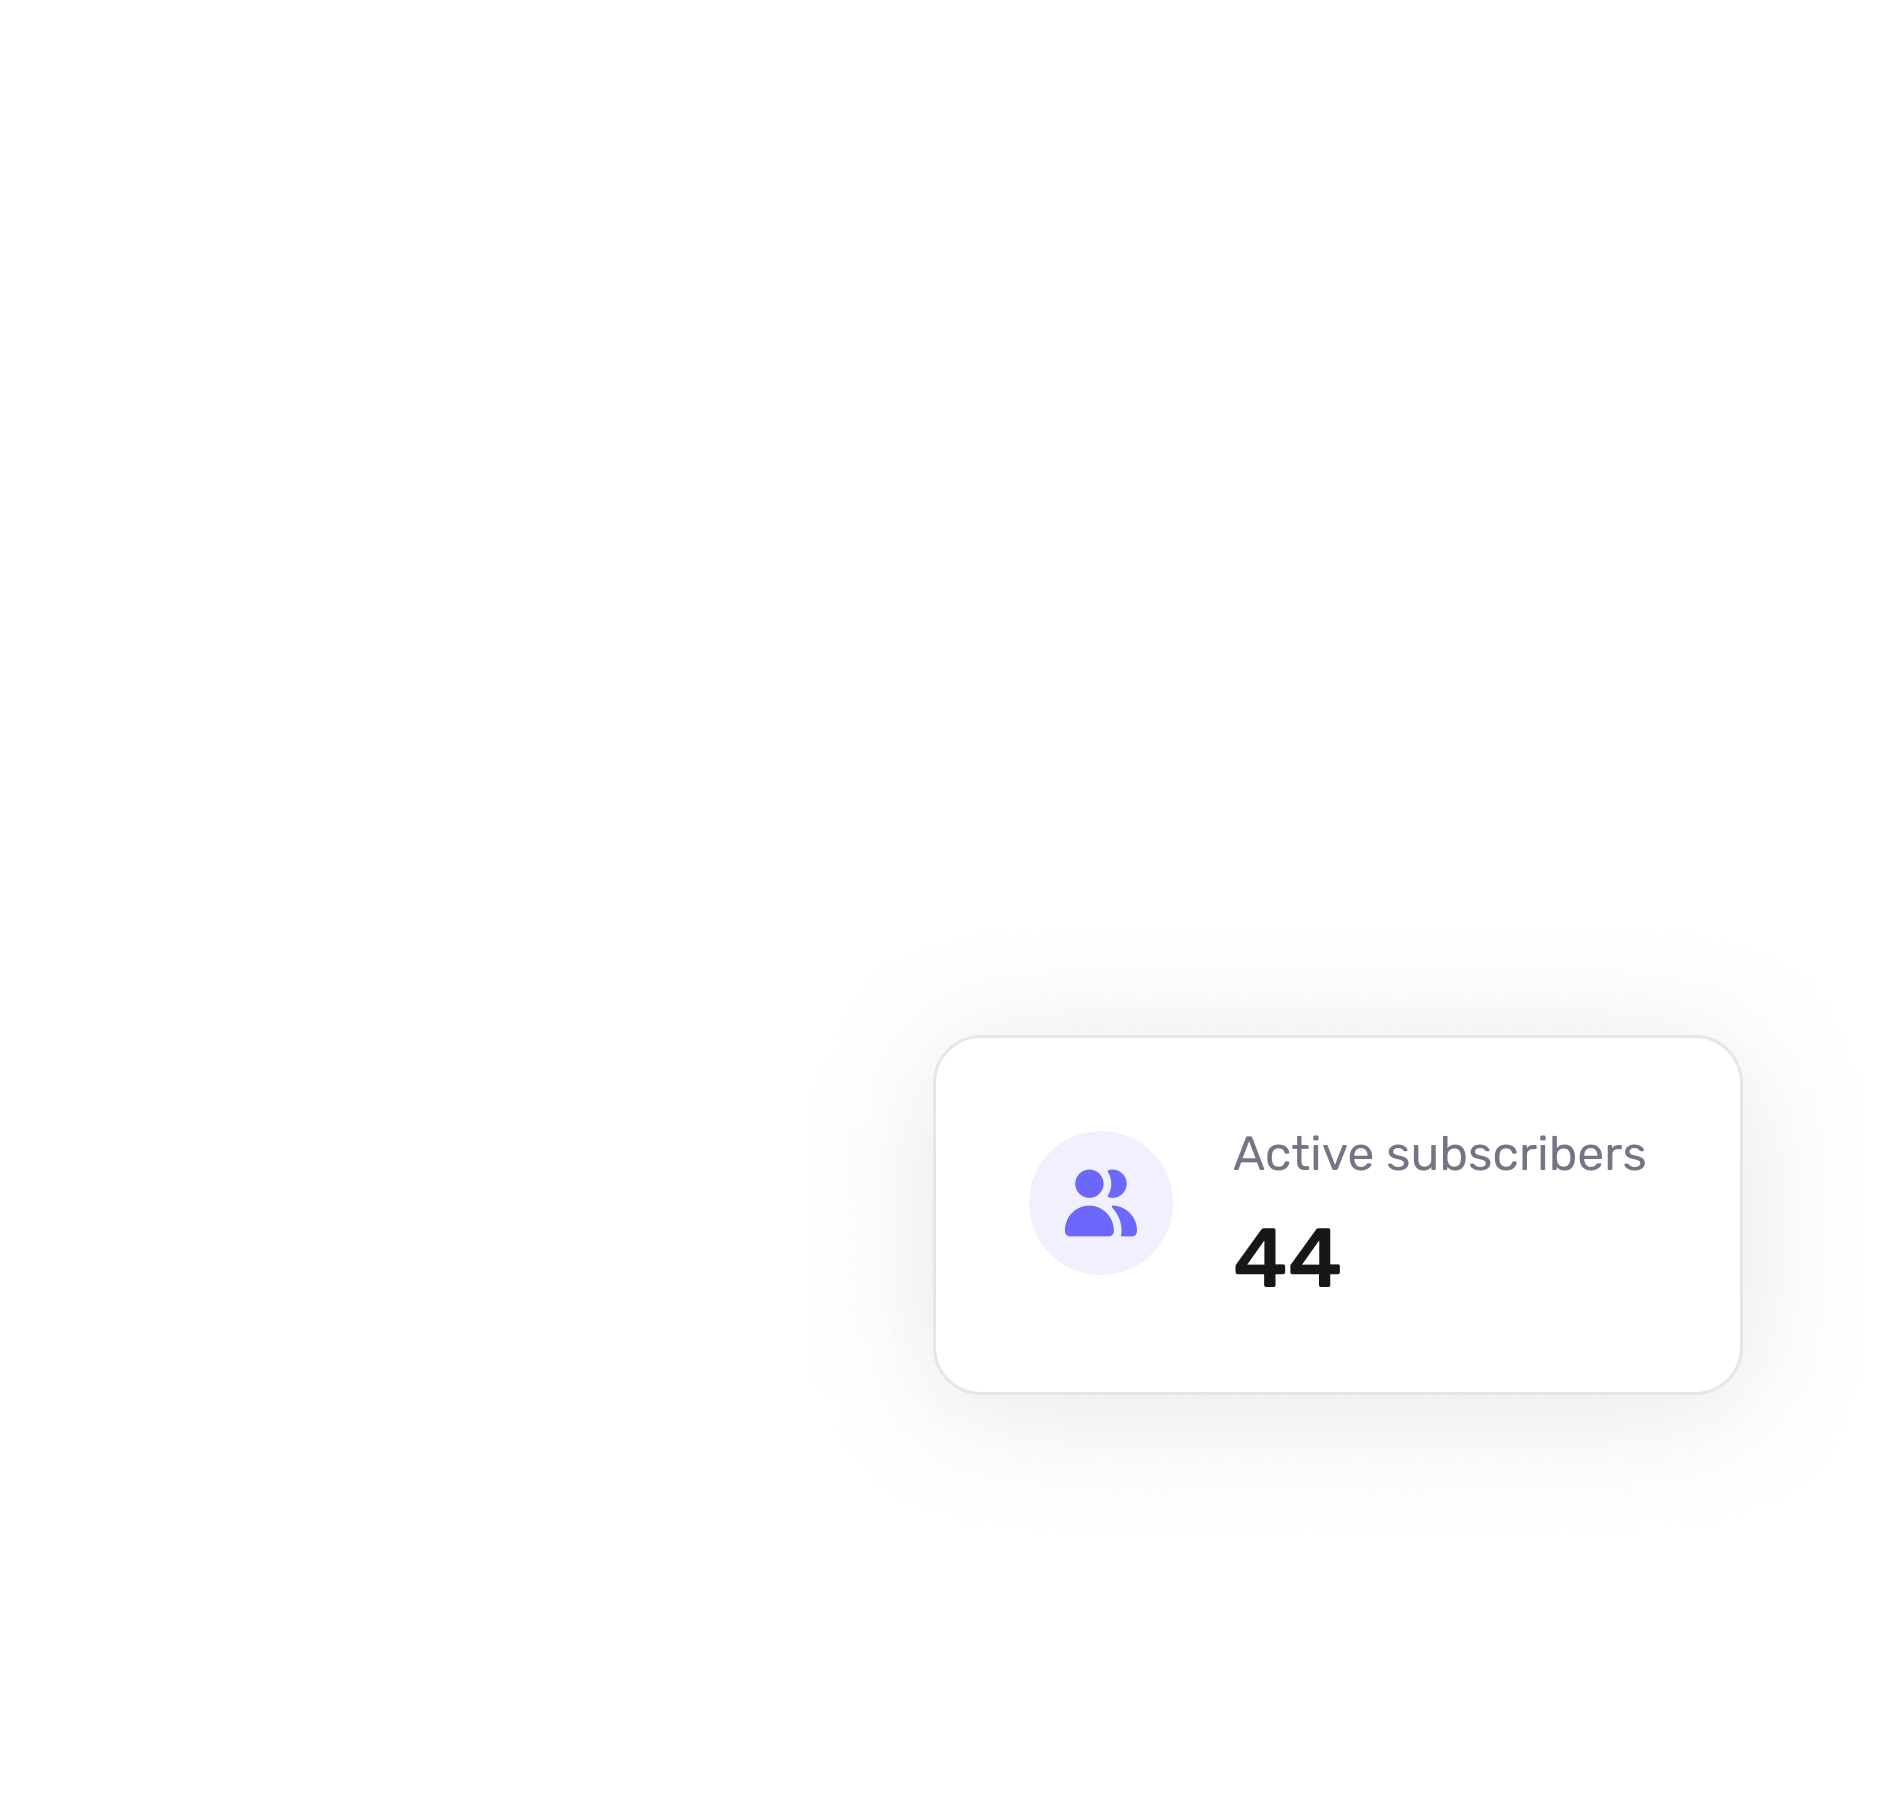 CoachSnap makes it easy for coaches to grow subscribers and build recurring revenue.